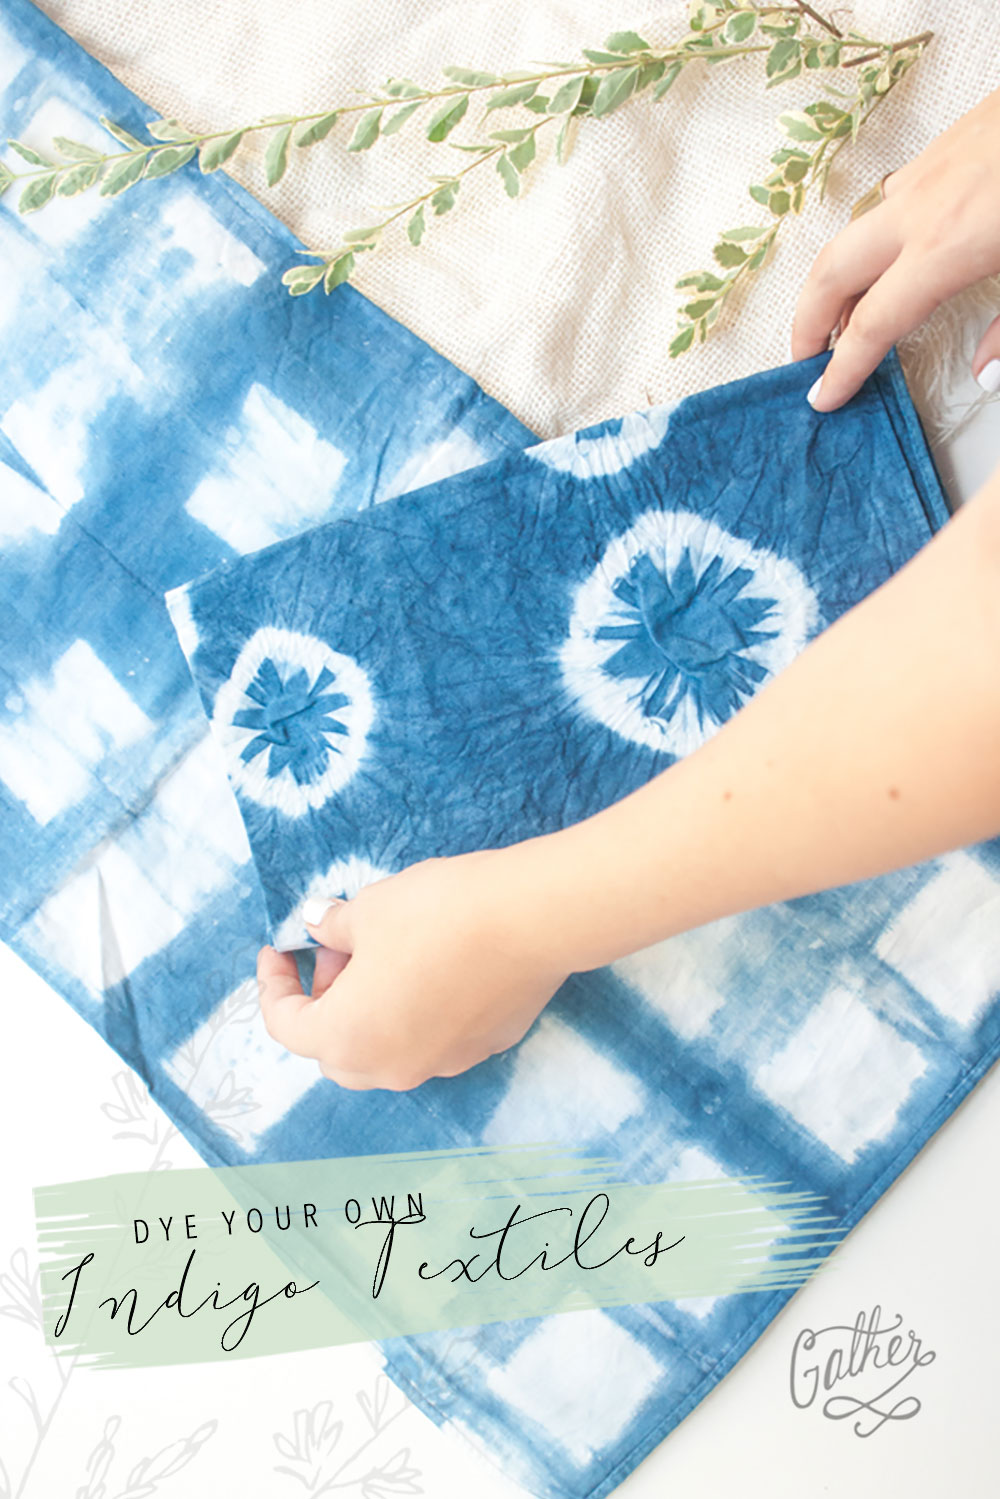 Indigo Shibori Textiles Class | Gather Goods Co